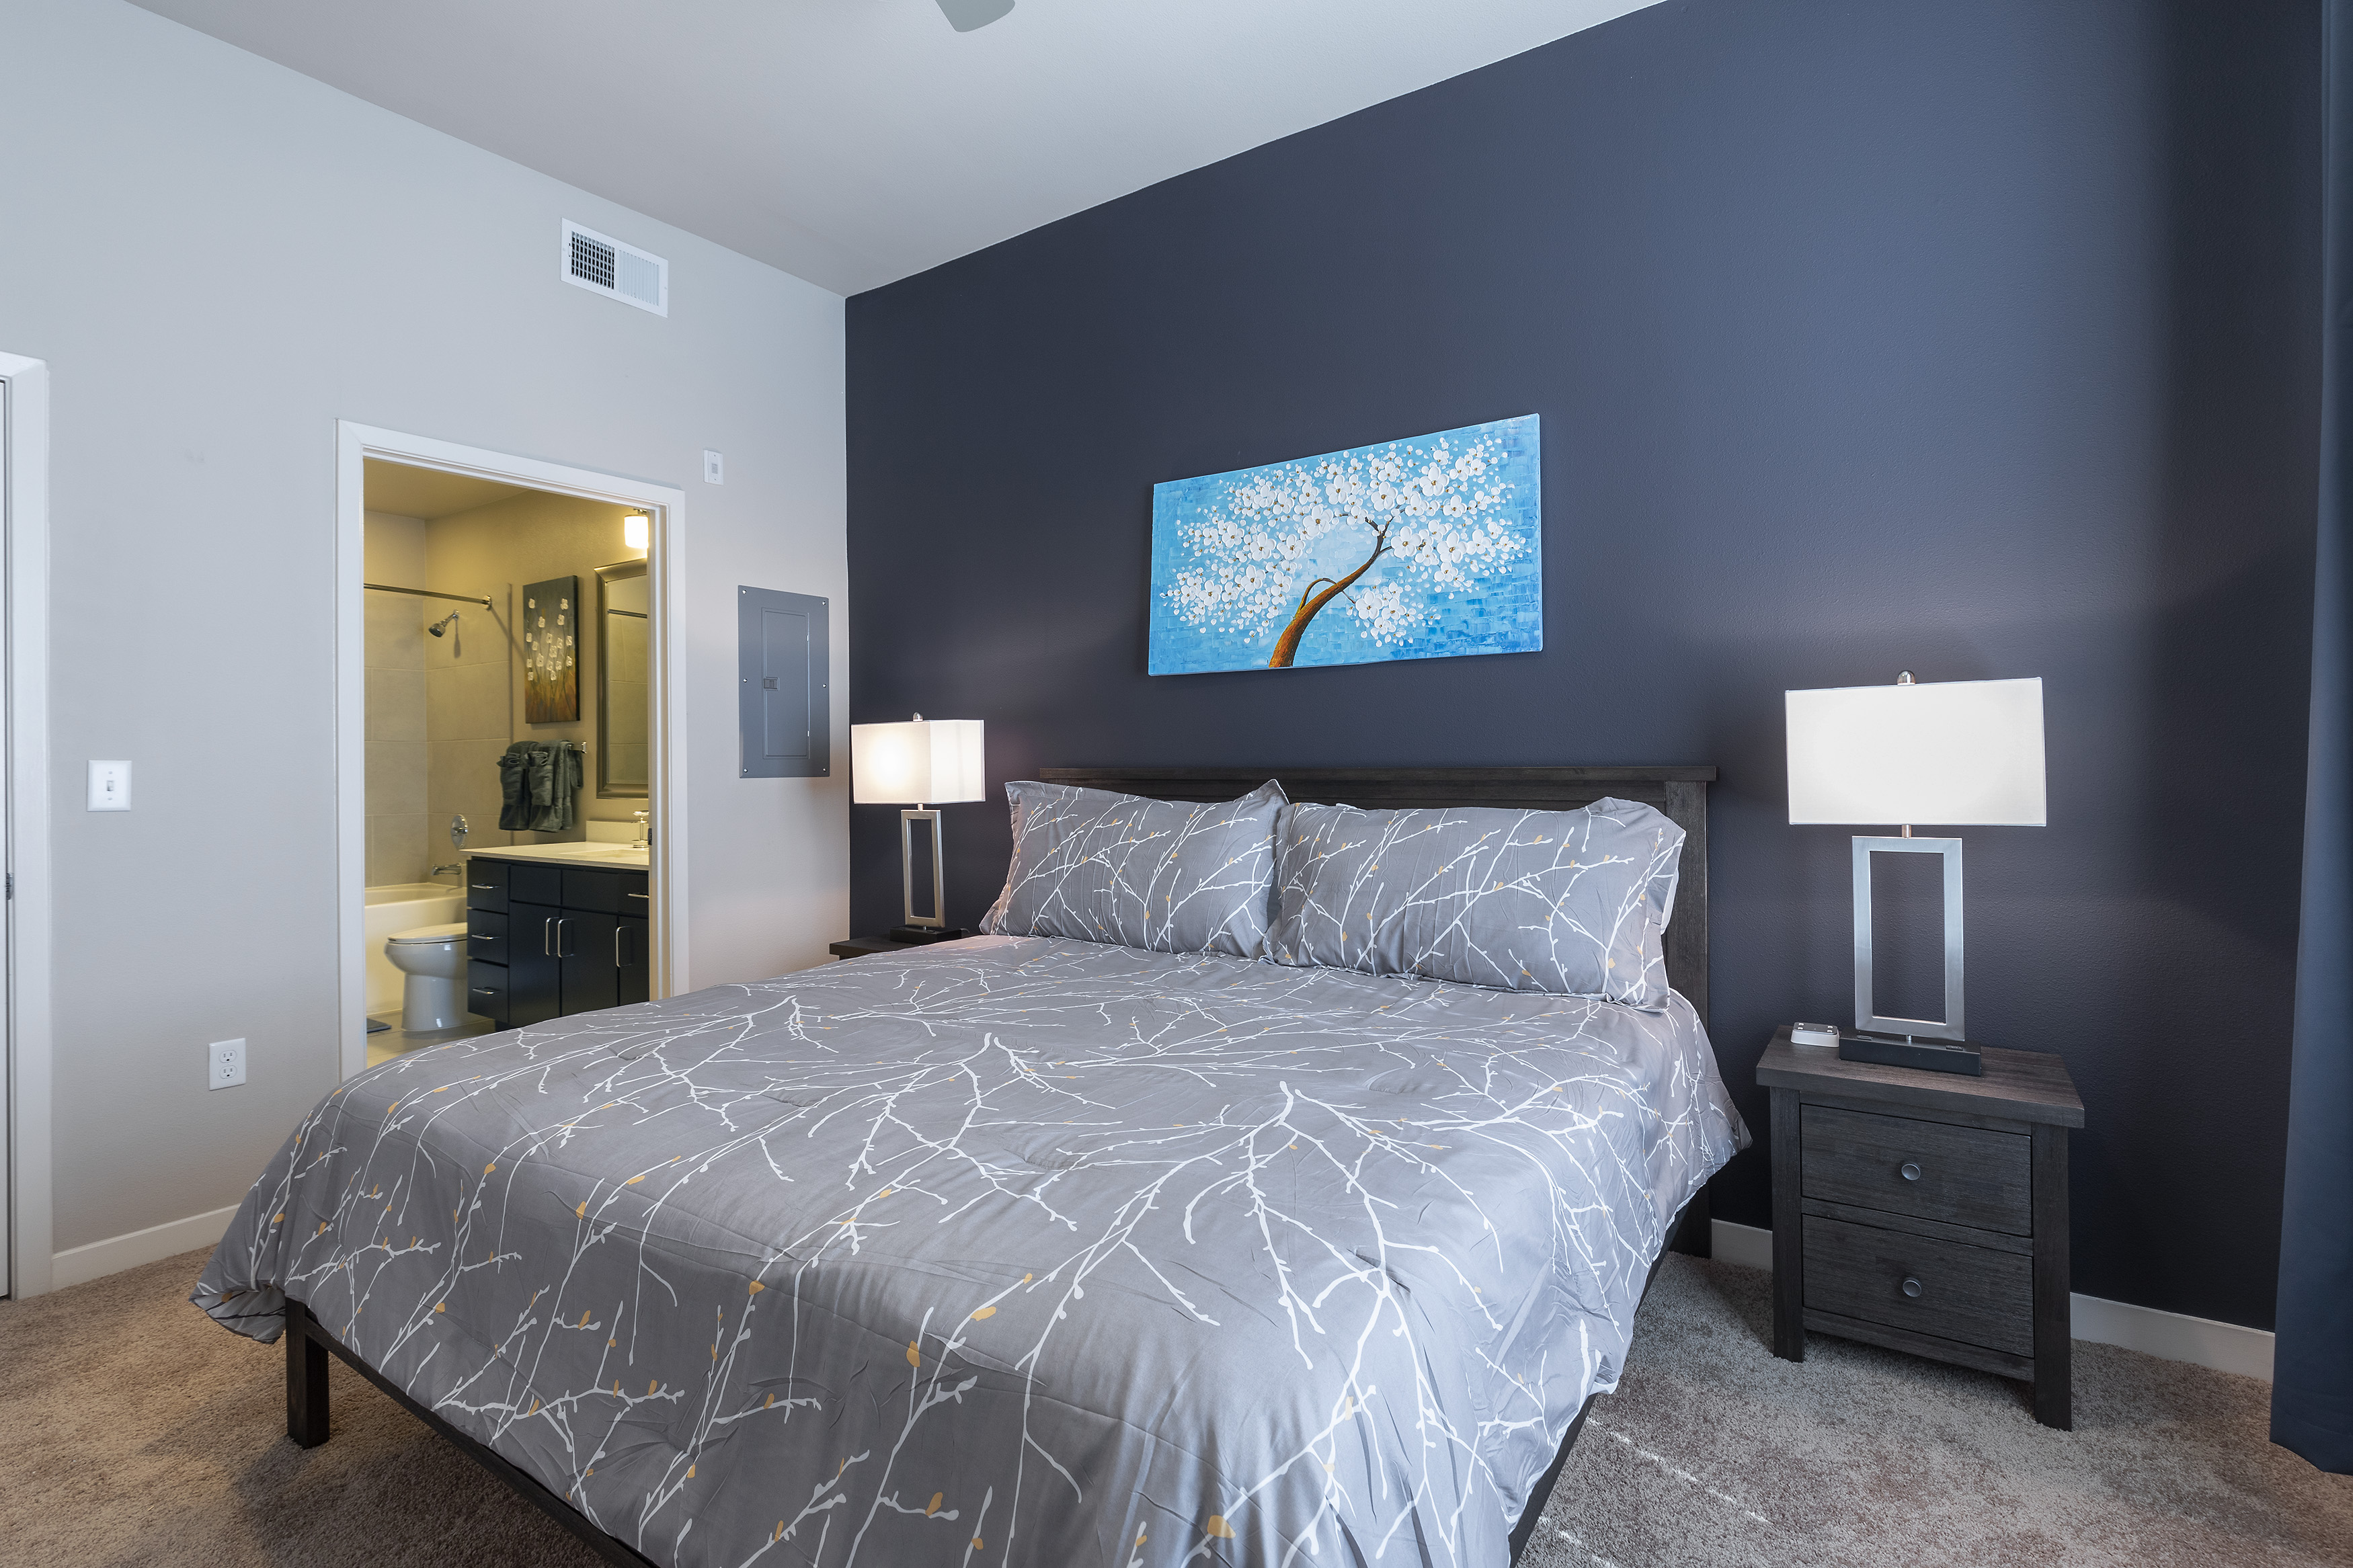 Apartment LUXURIOUS - KING SIZED BED - MED CENTER FULLY EQUIPPED CONDO photo 21441058